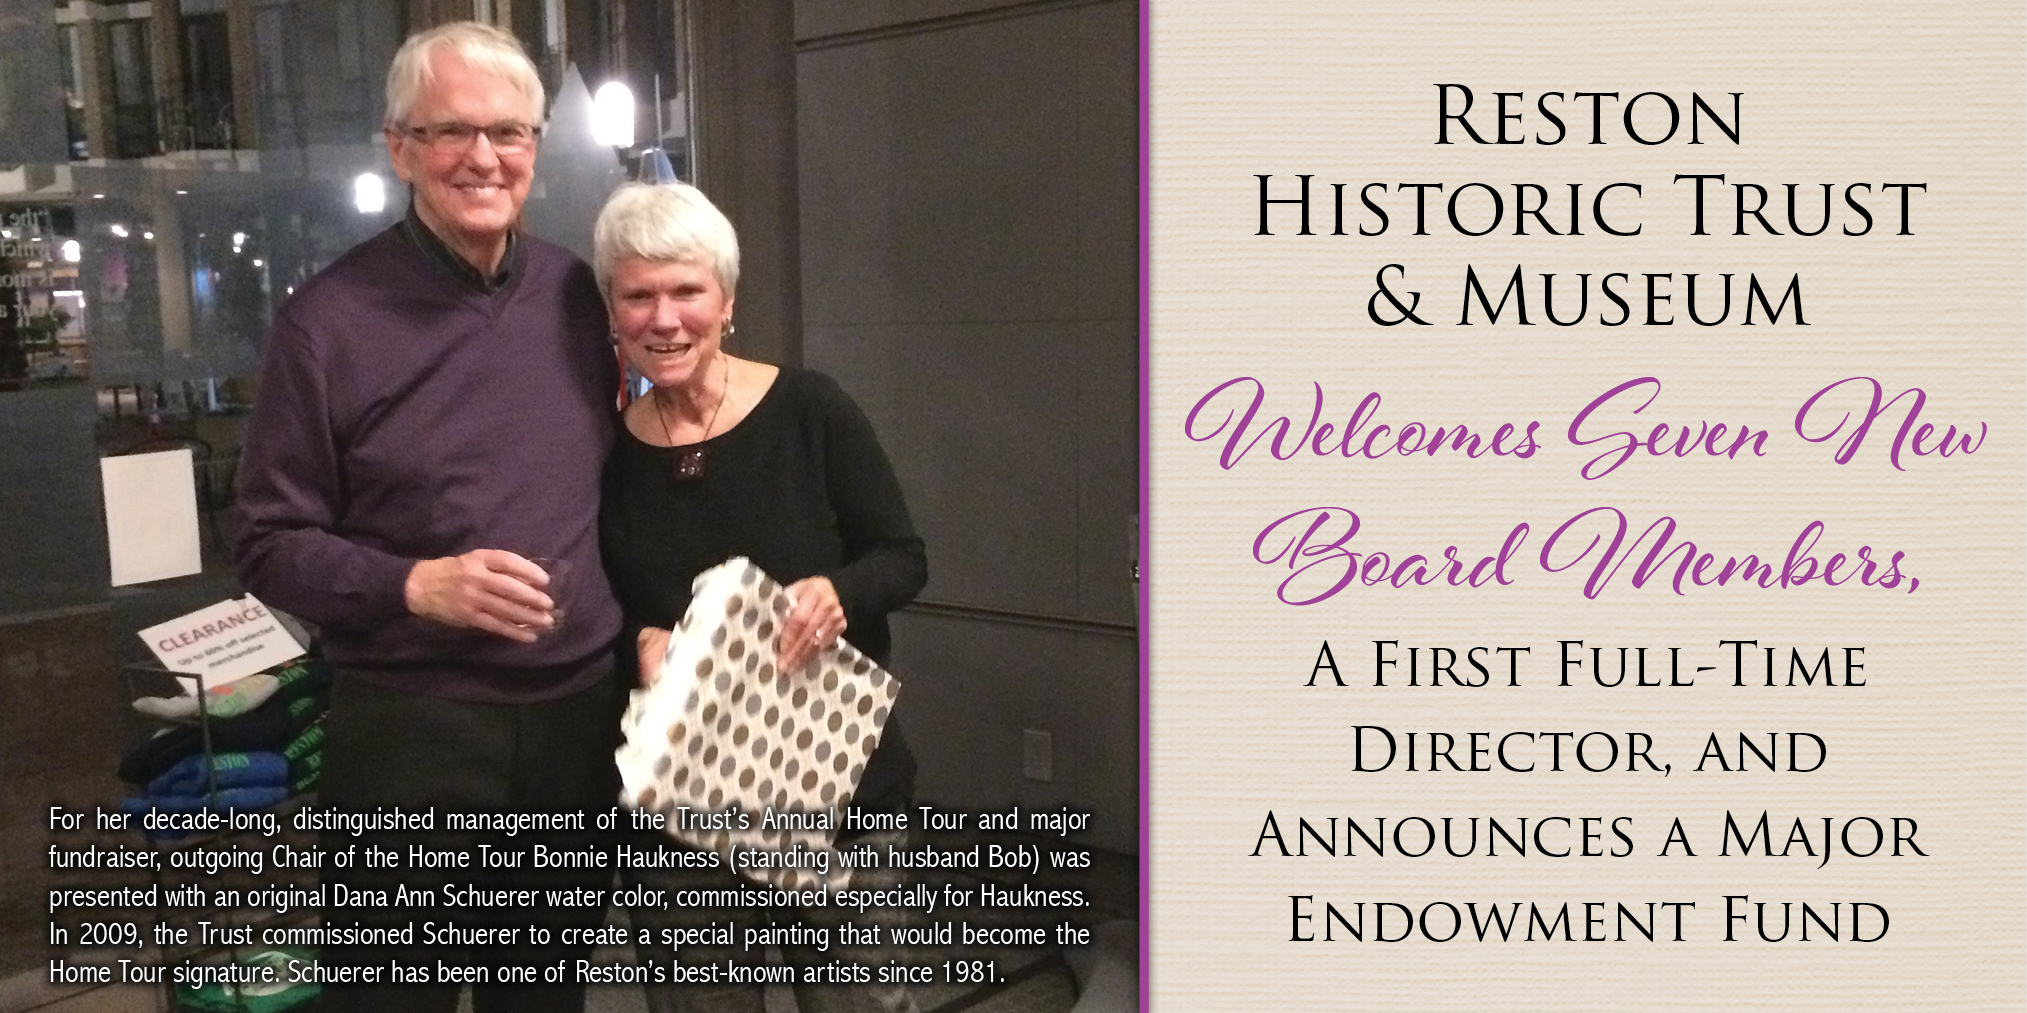 Reston Historic Trust & Museum Welcomes Seven New Board Members, A First Full-Time Director, and Announces a Major Endowment Fund - Chair of the Home Tour Bonnie Haukness (standing with husband Bob